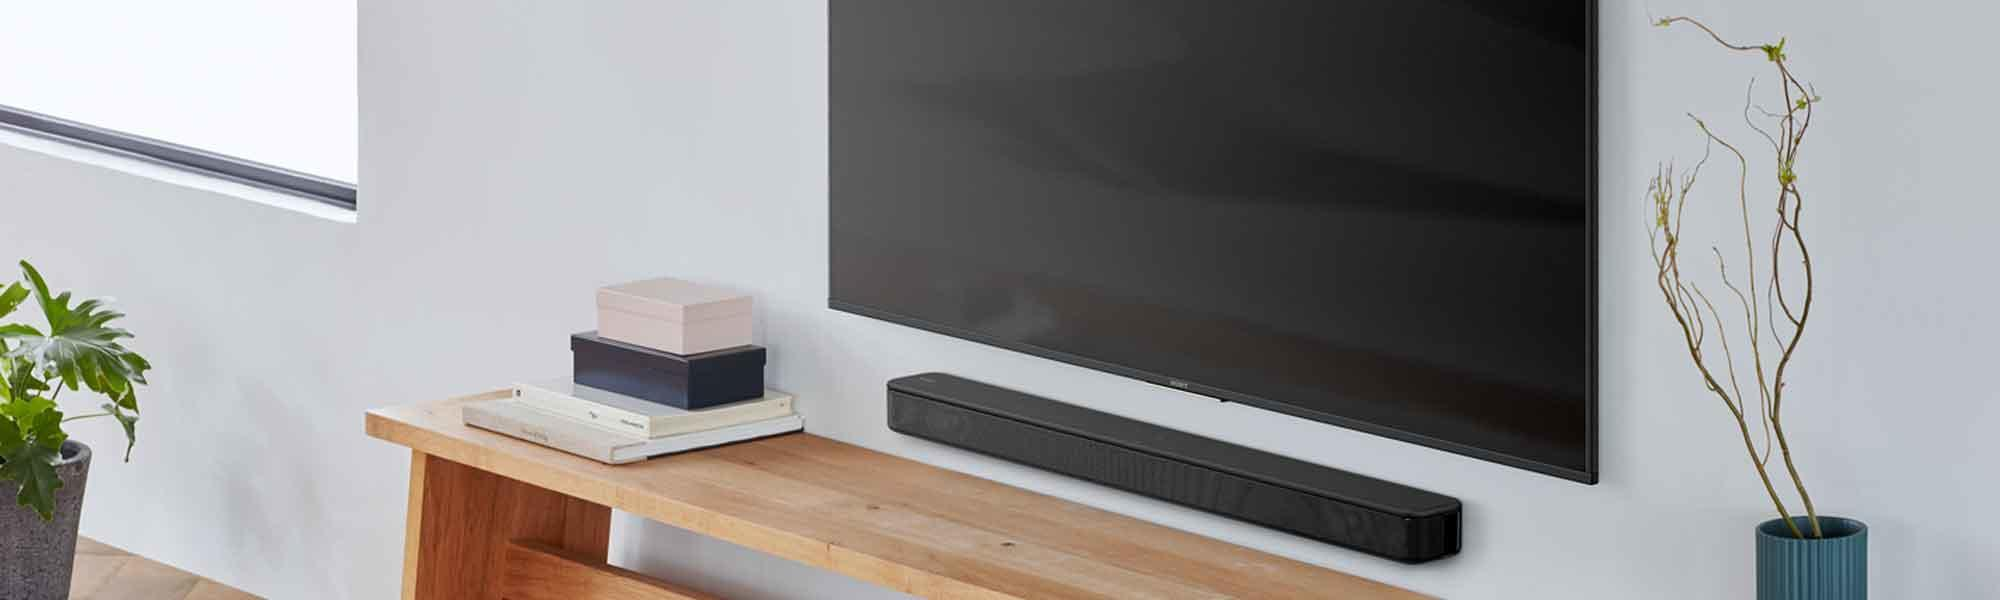 Sony HT-SF150 Sound Bar 2.0 30w Bluetooth Sound Bar